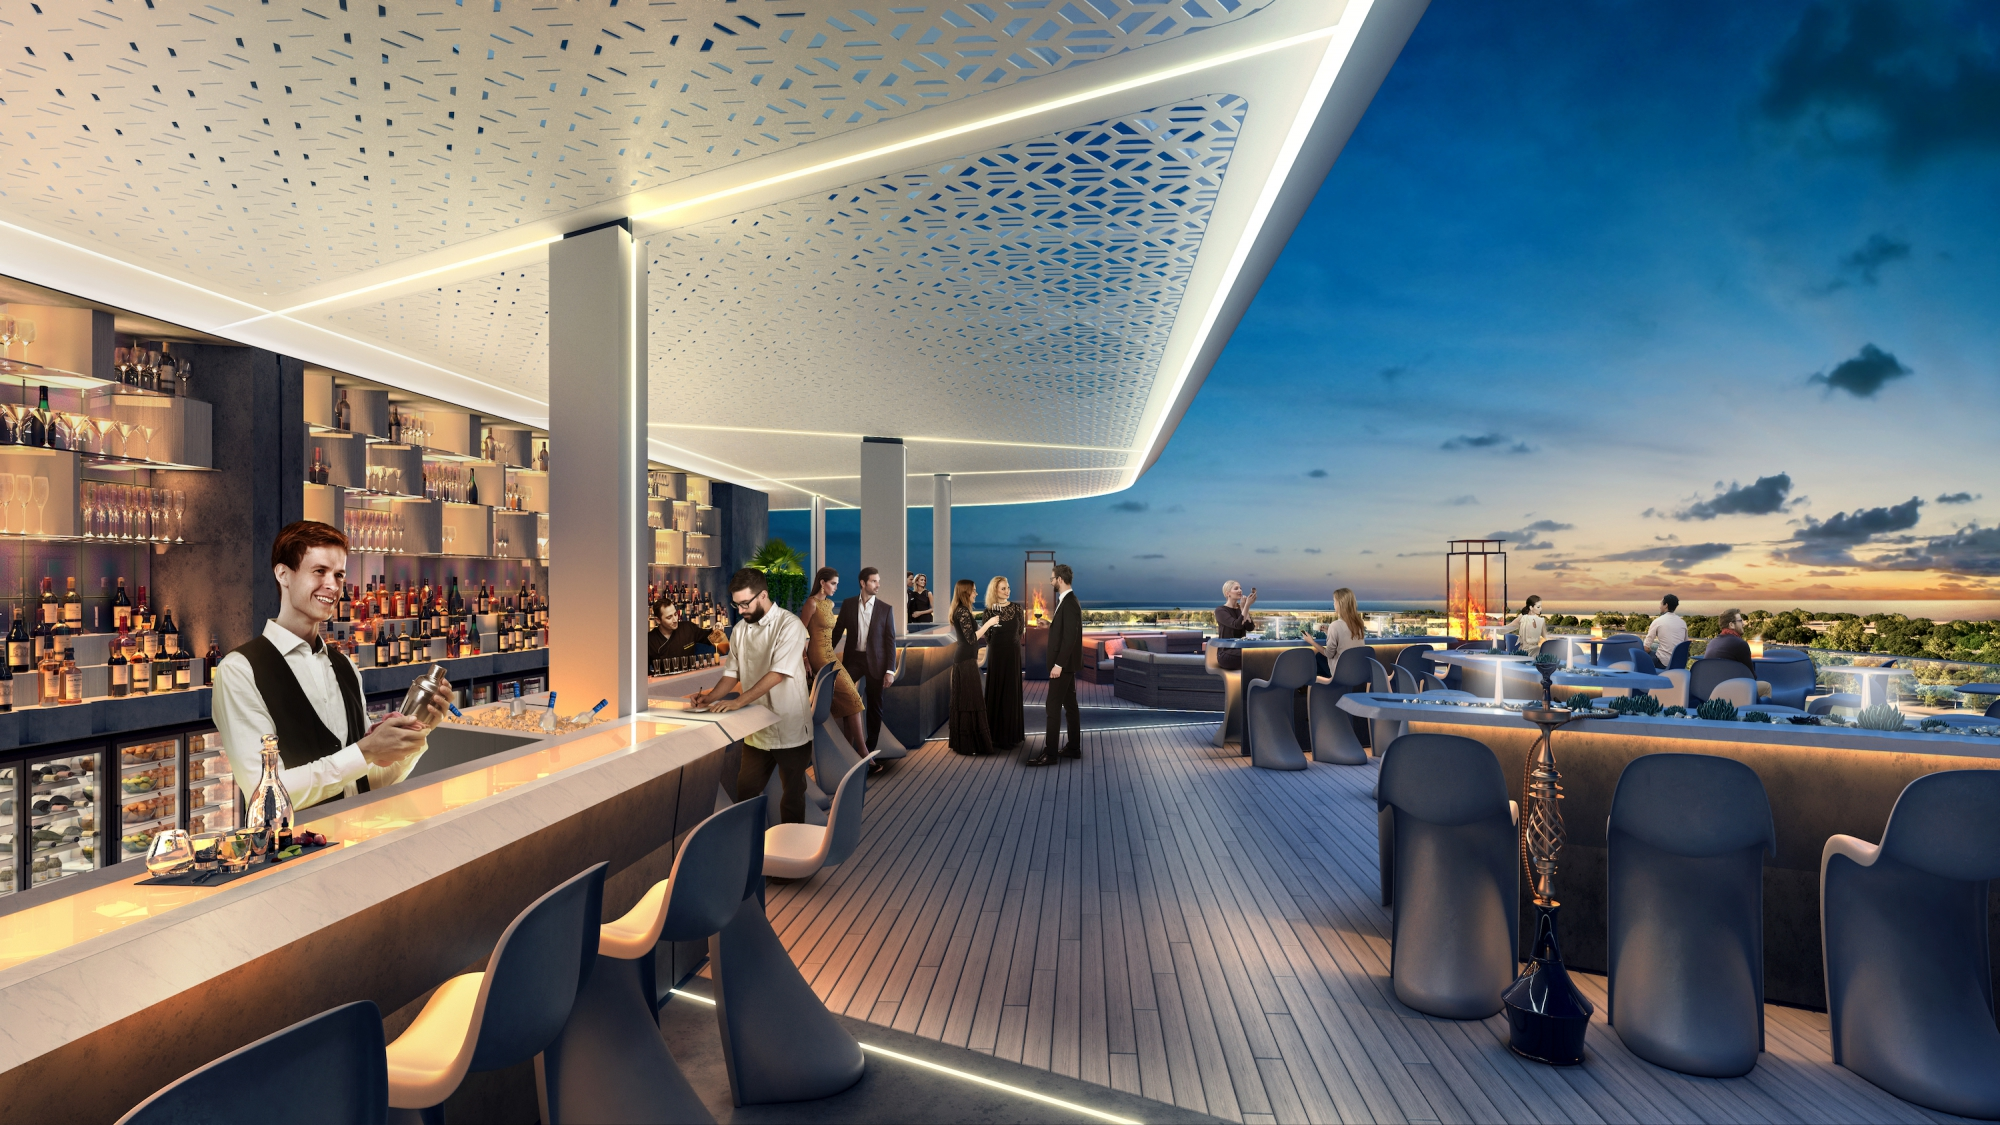 Rooftop Bar design visualisation